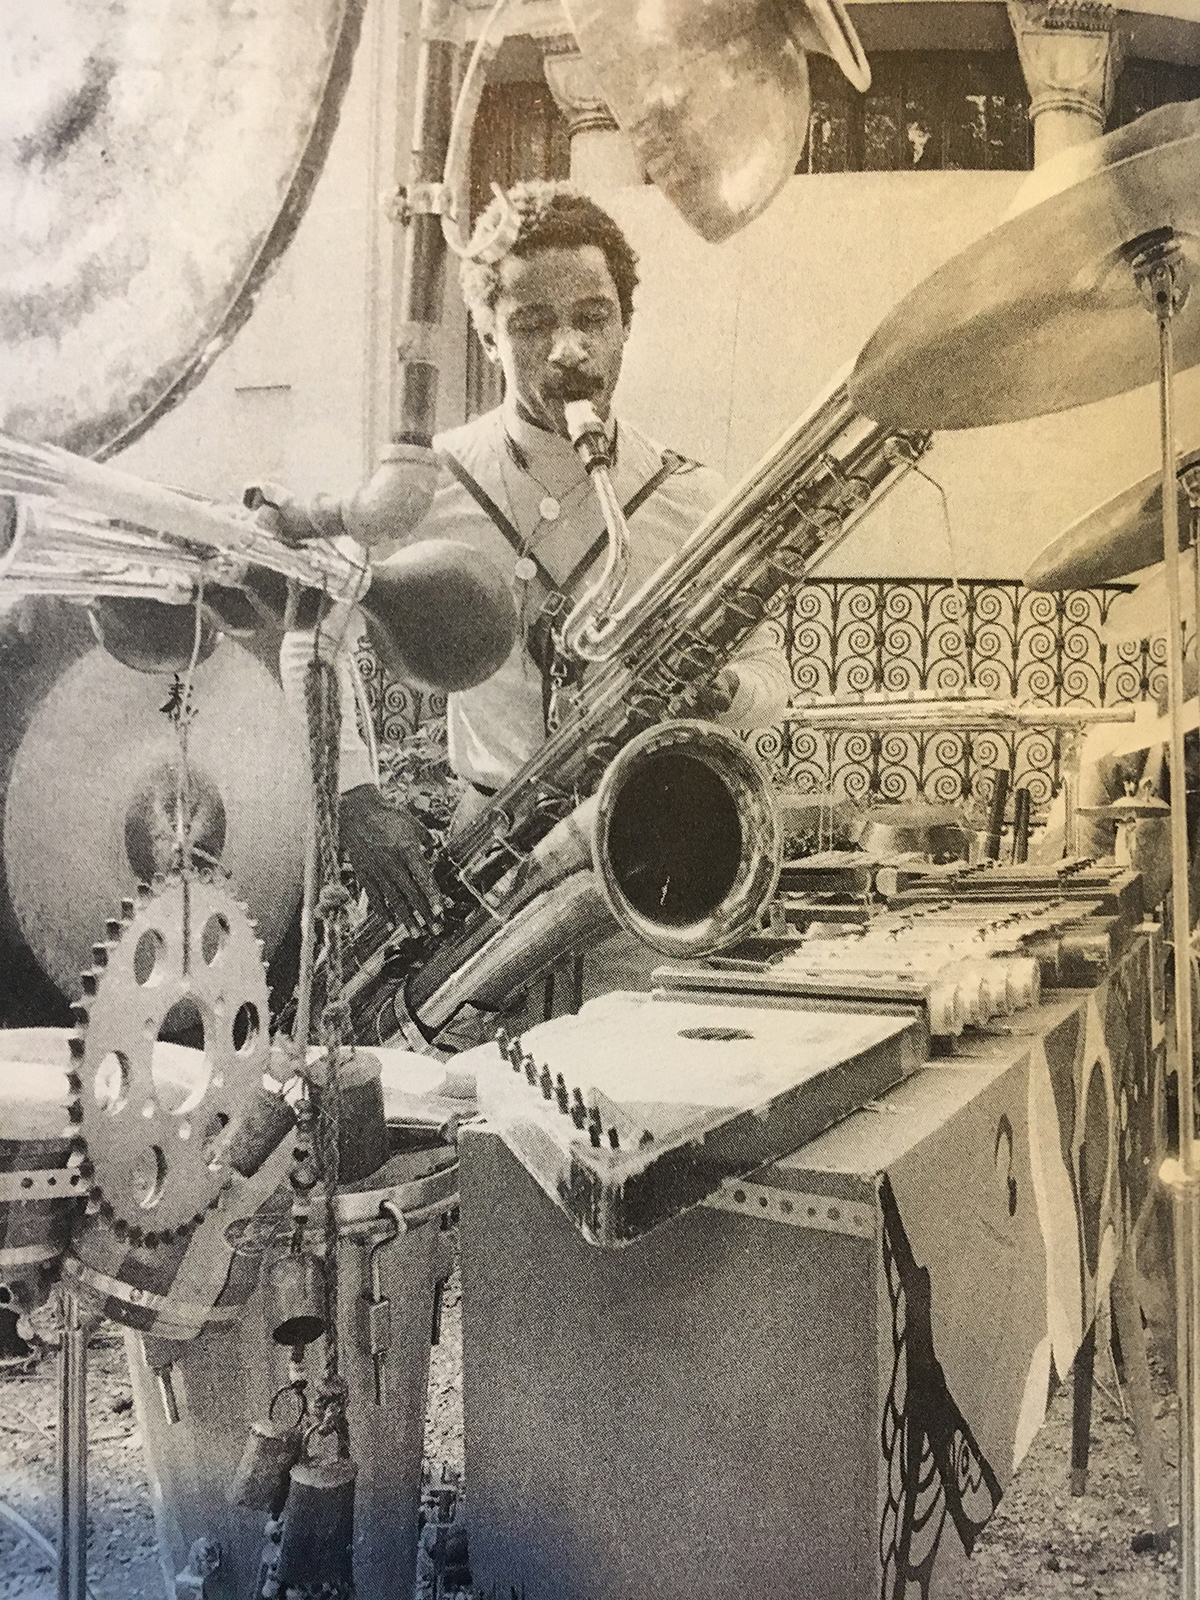 Tracing the Roots: Art Ensemble of Chicago's Great Black Music, Ancient To The Future